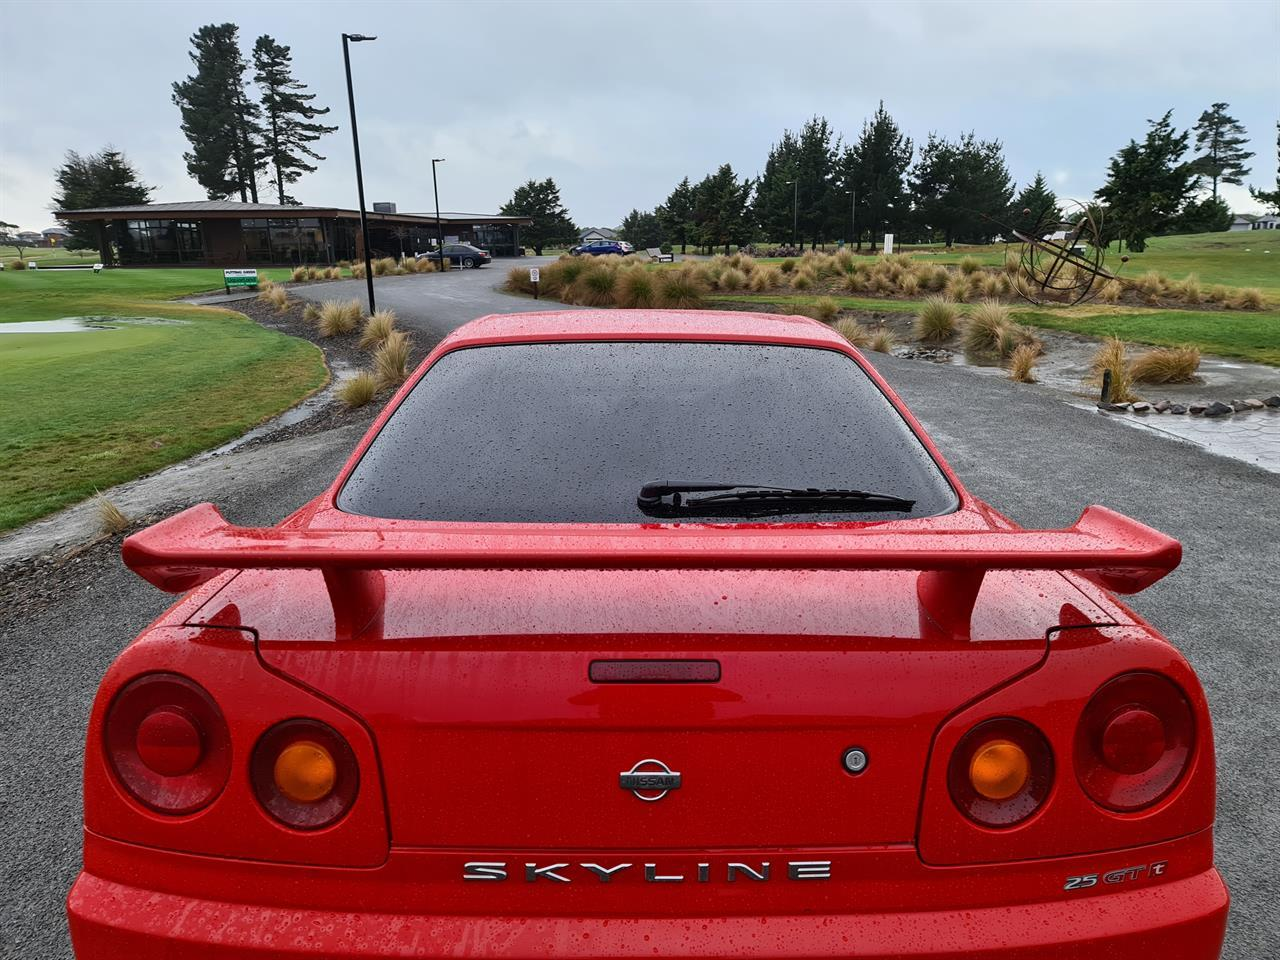 image-3, 2000 Nissan Skyline COUPE 25 GT TURBO at Christchurch